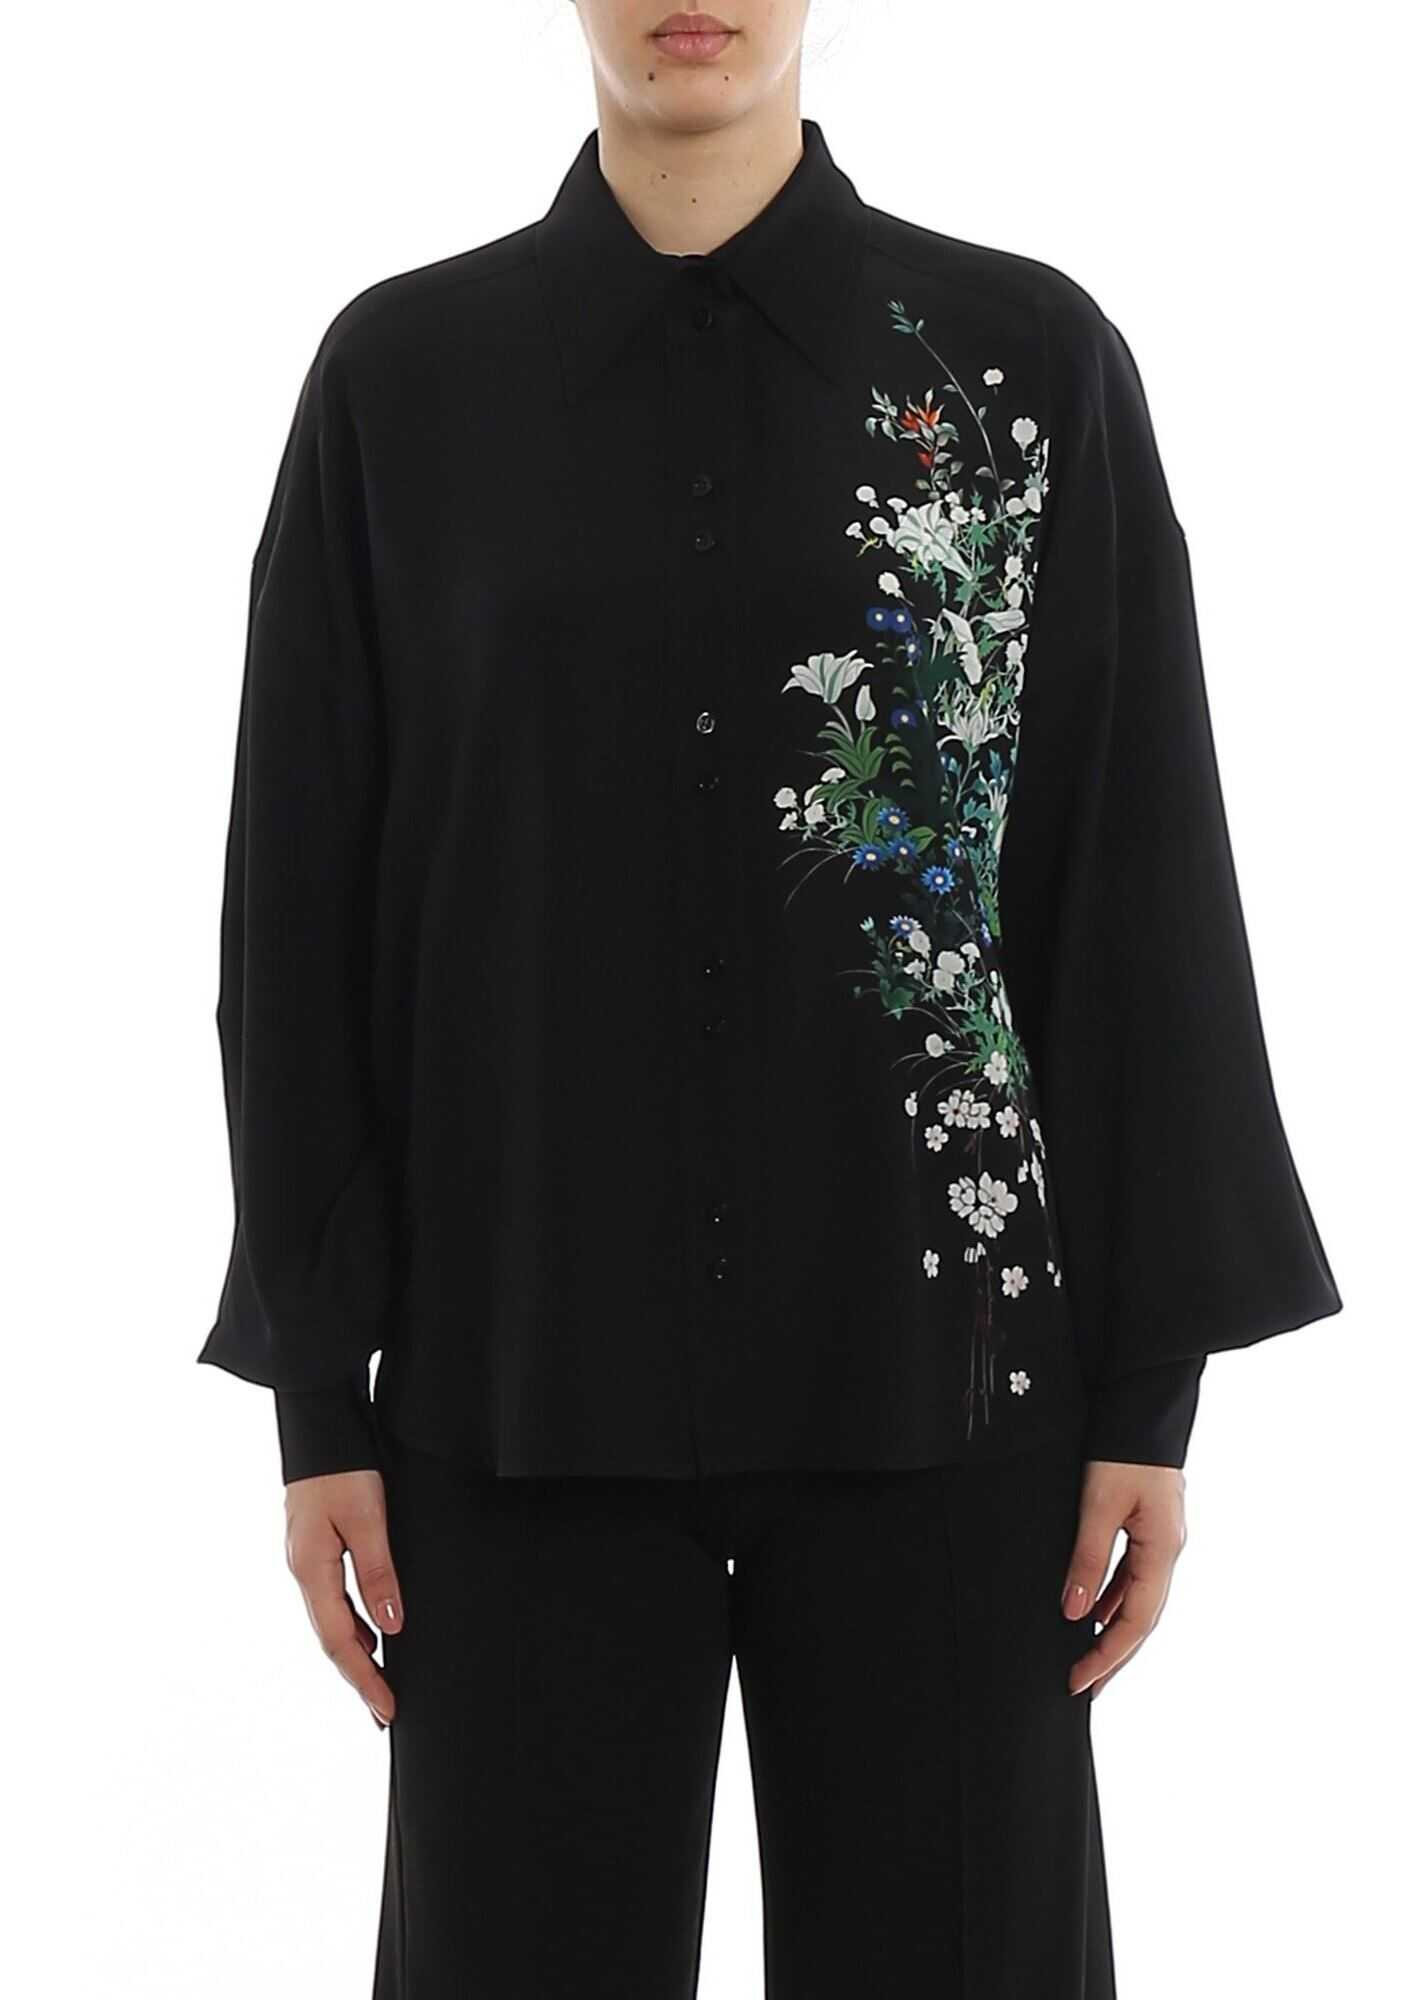 Givenchy Floral Print Silk Shirt Black